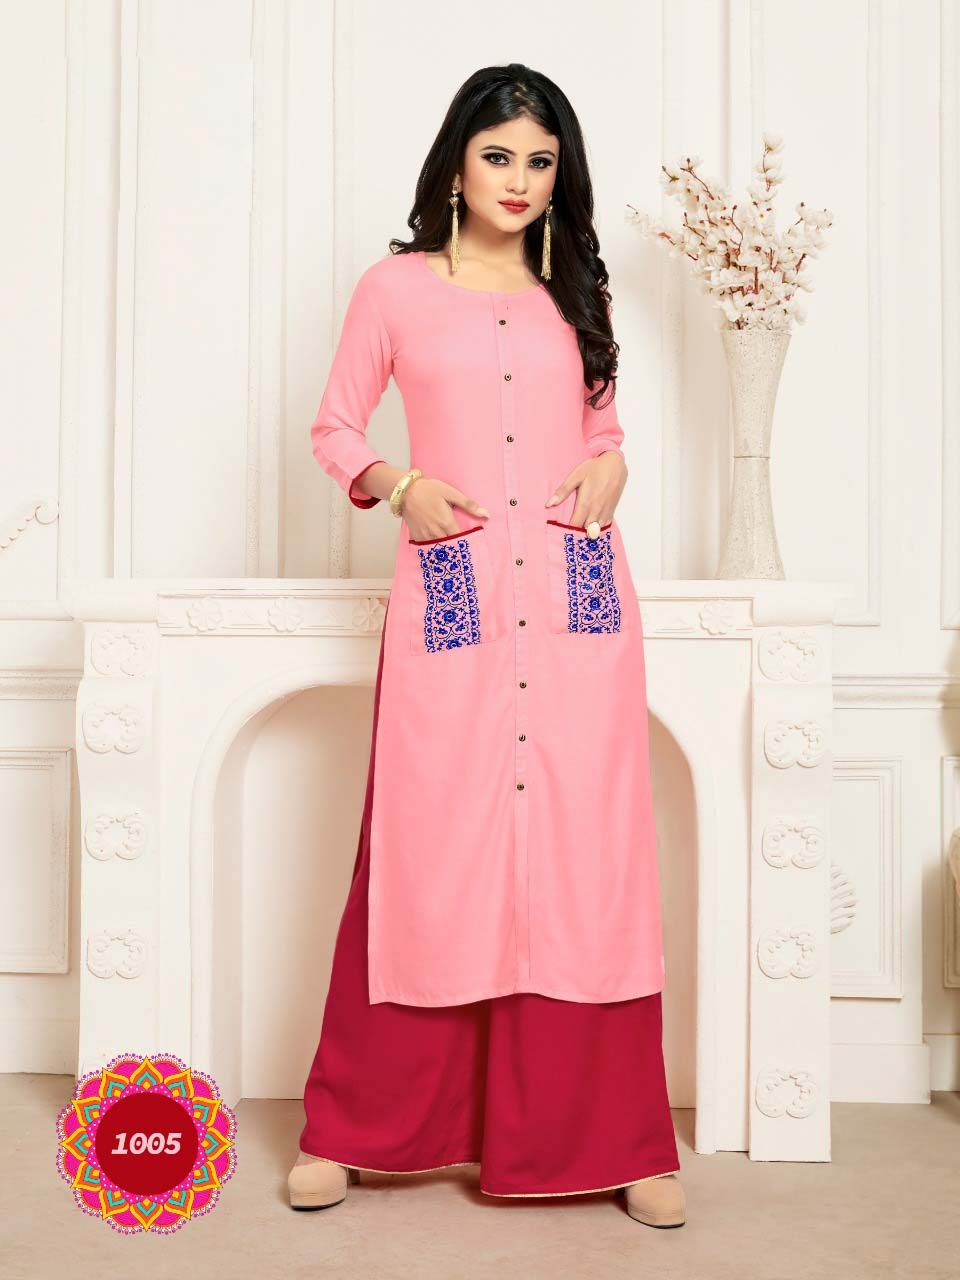 SUF SEP VICTORIYA 2019-D NO 1005 WOMEN KURTI